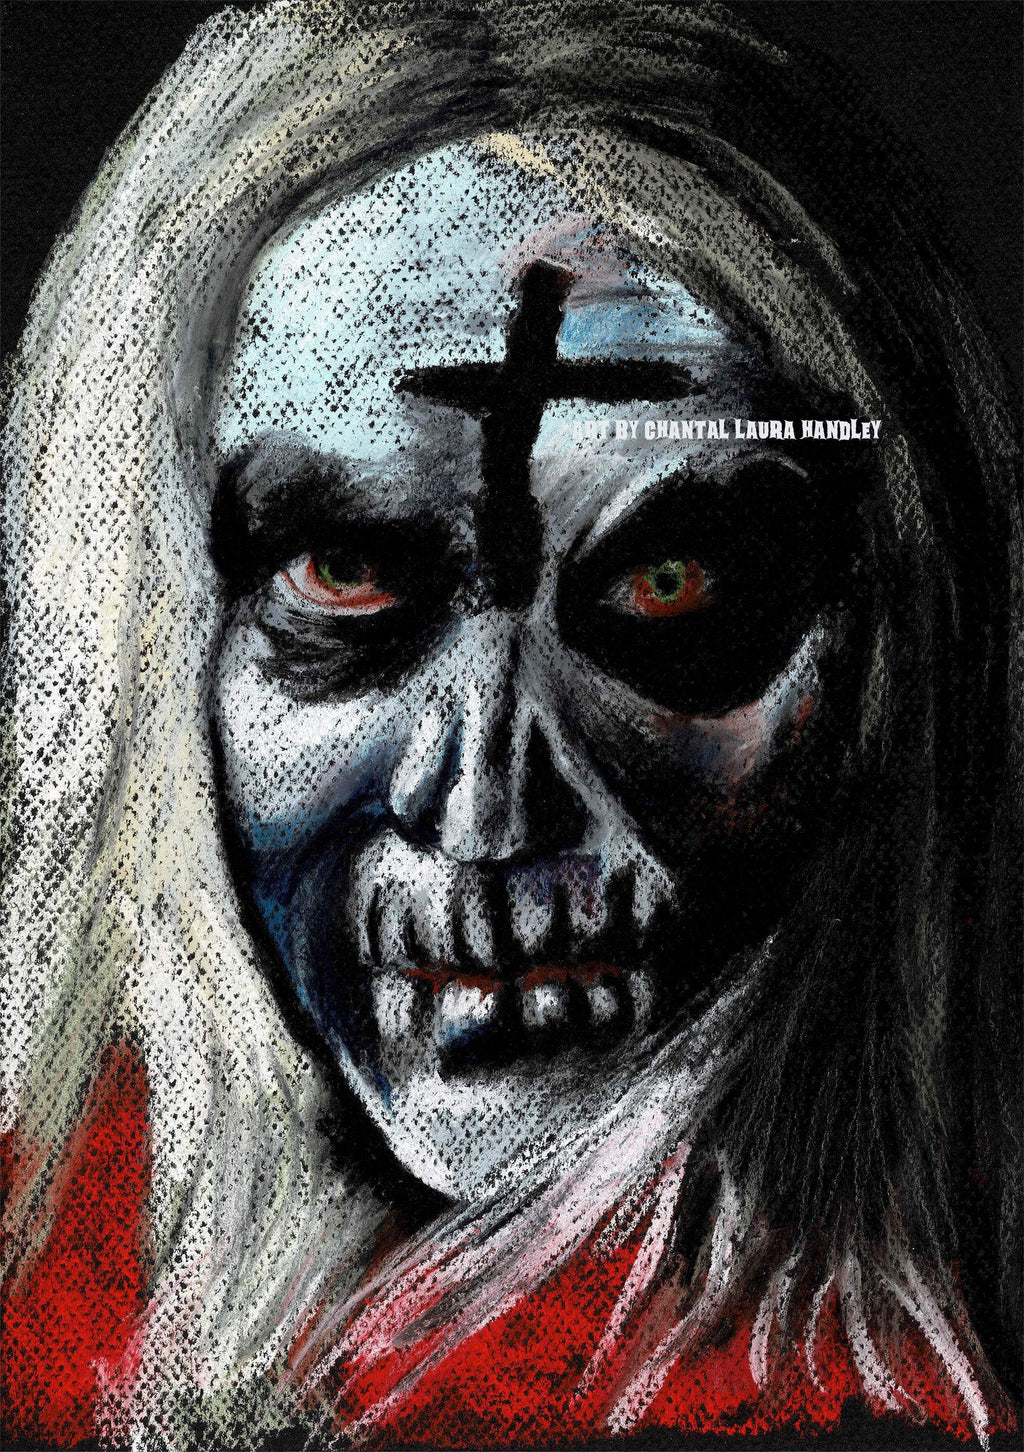 HOUSE of 1000 CORPSES - Otis B. Driftwood - ChantalLauraHandley